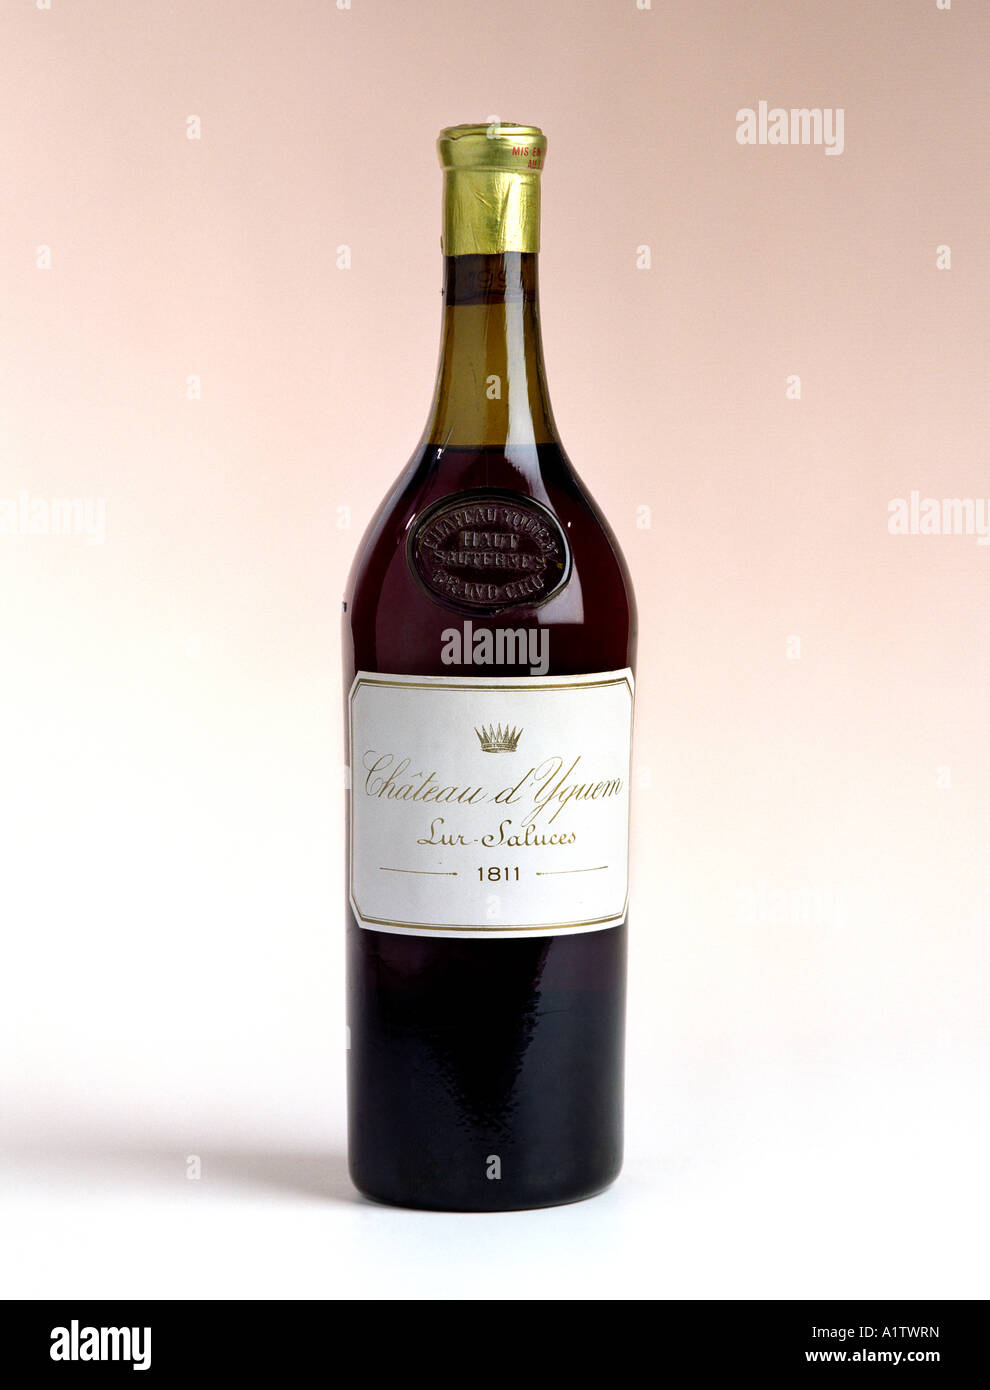 A rare bottle of 1811 Chateau d Yquem from the Bordeaux region of France - Stock Image